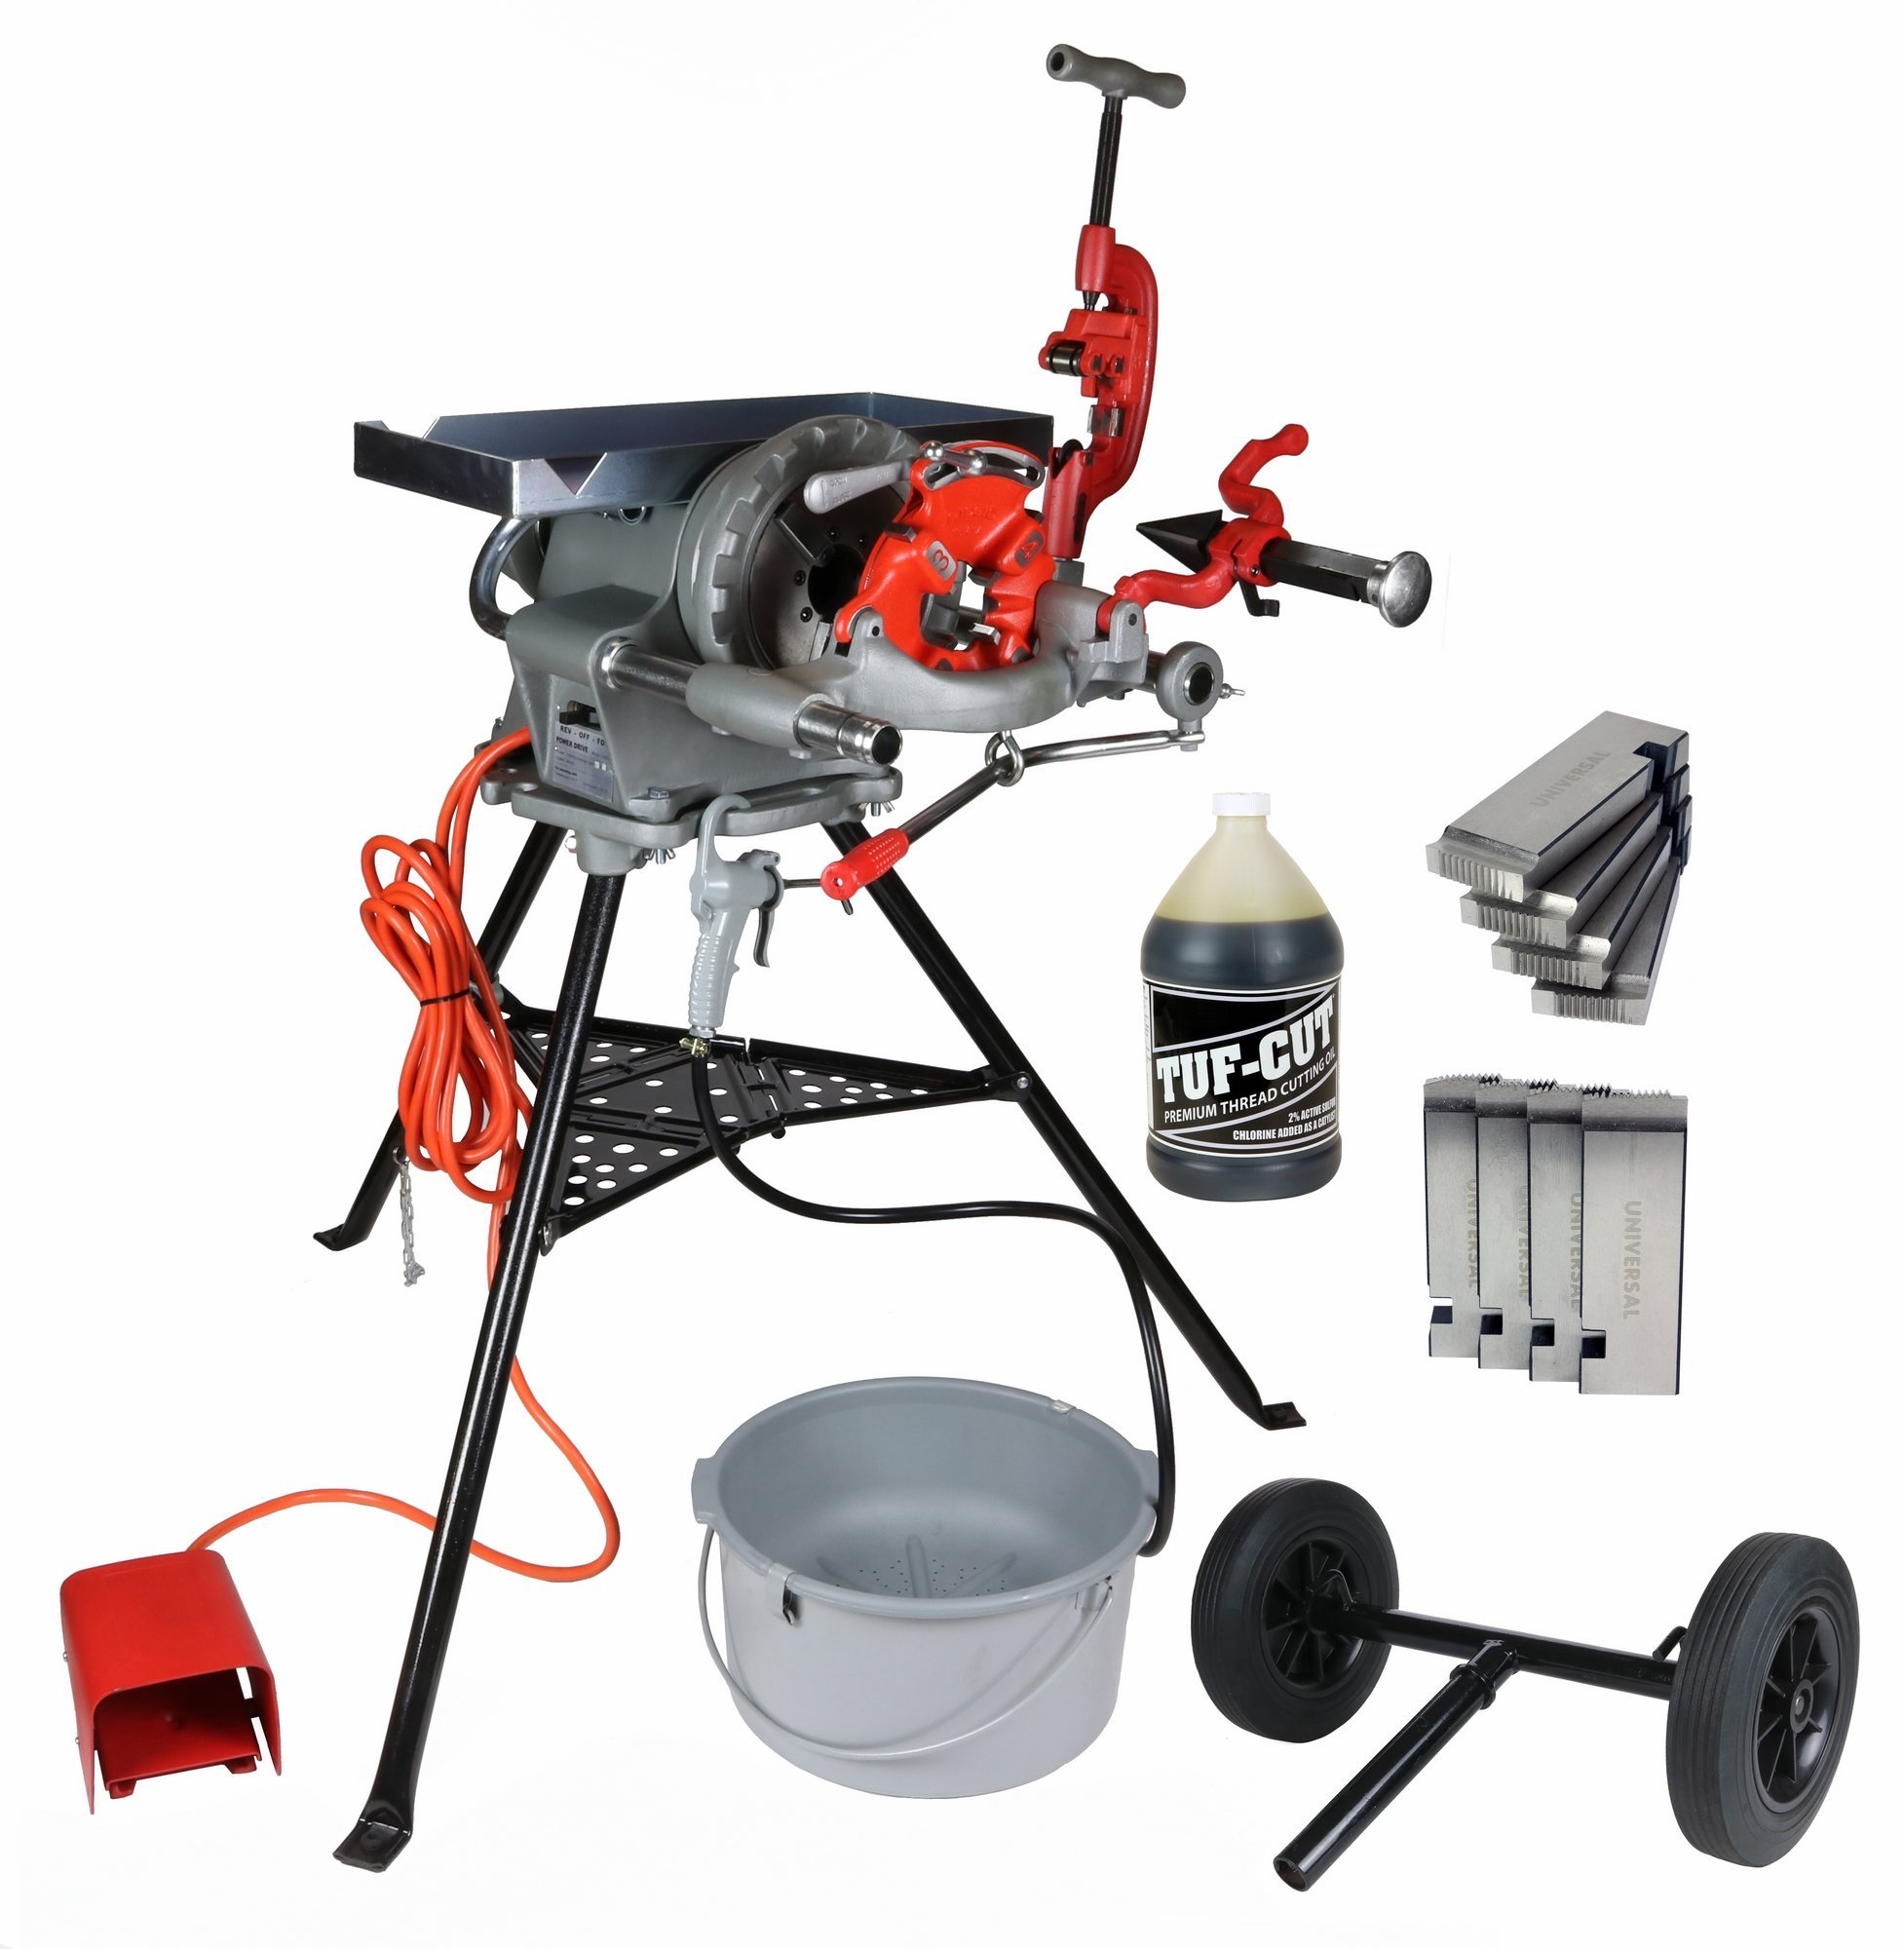 Toledo Pipe 300 15682 Complete Pipe Threading Machine, 38 RPM, RIDGID 811A fits RIDGID 300 T2 418 with Accessory Kit